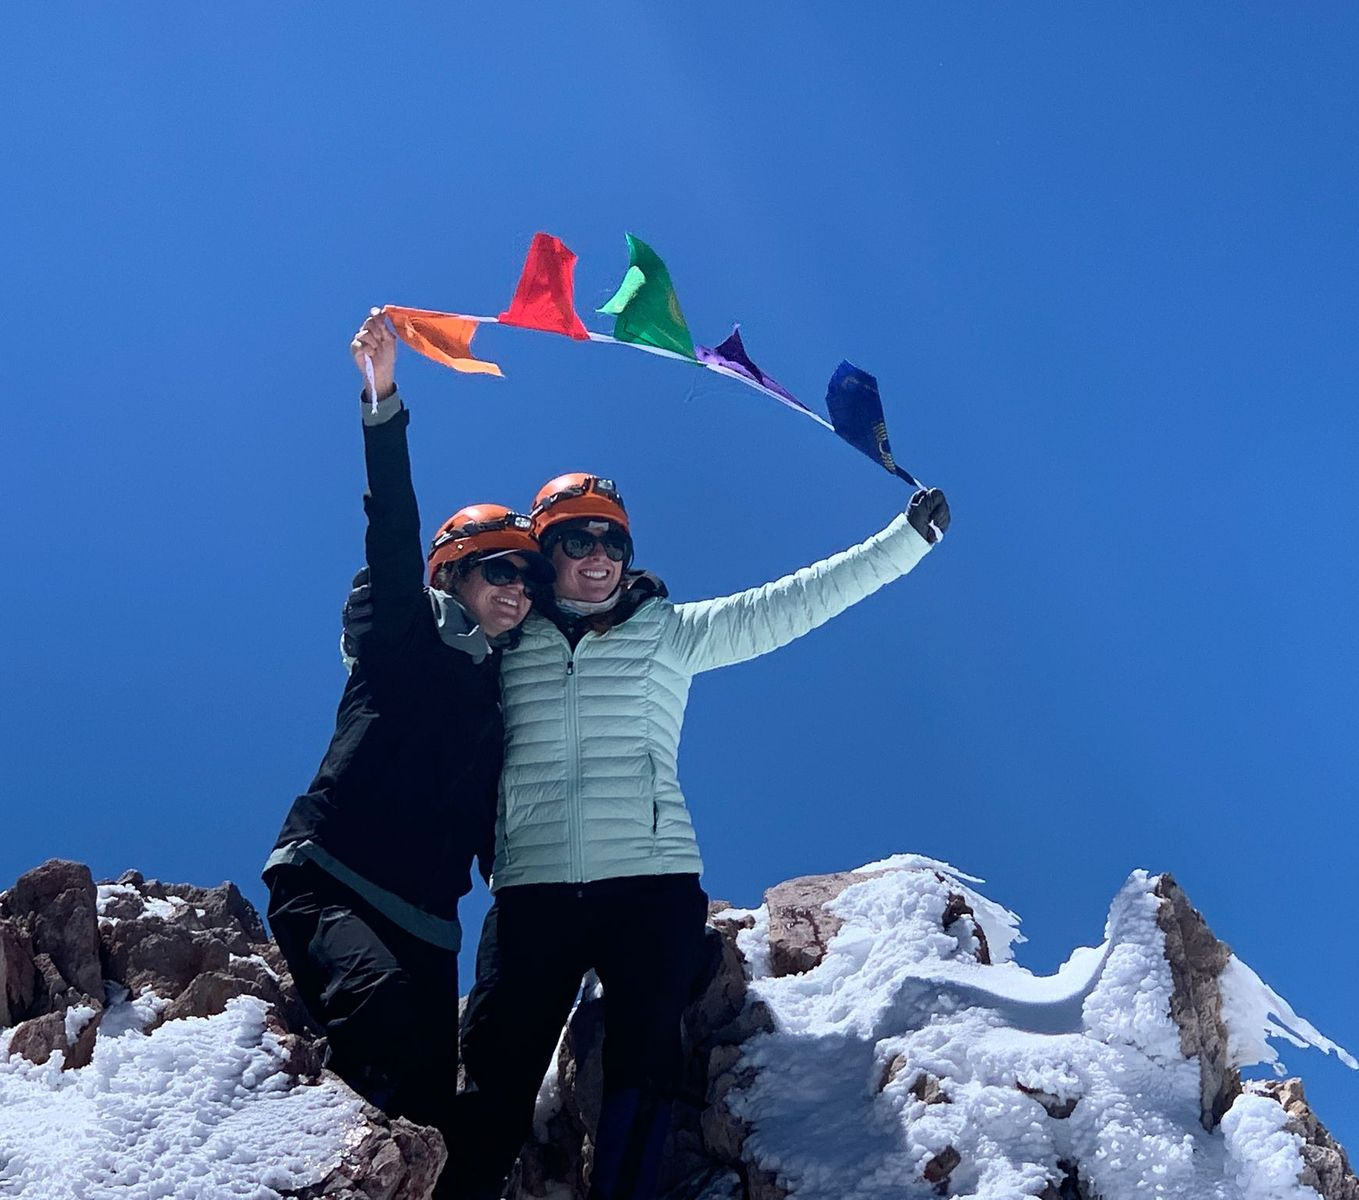 Bridget Vanoni and Kayla Field summit Mt Shasta Climb Against the Odds Breast Cancer Prevention Partners